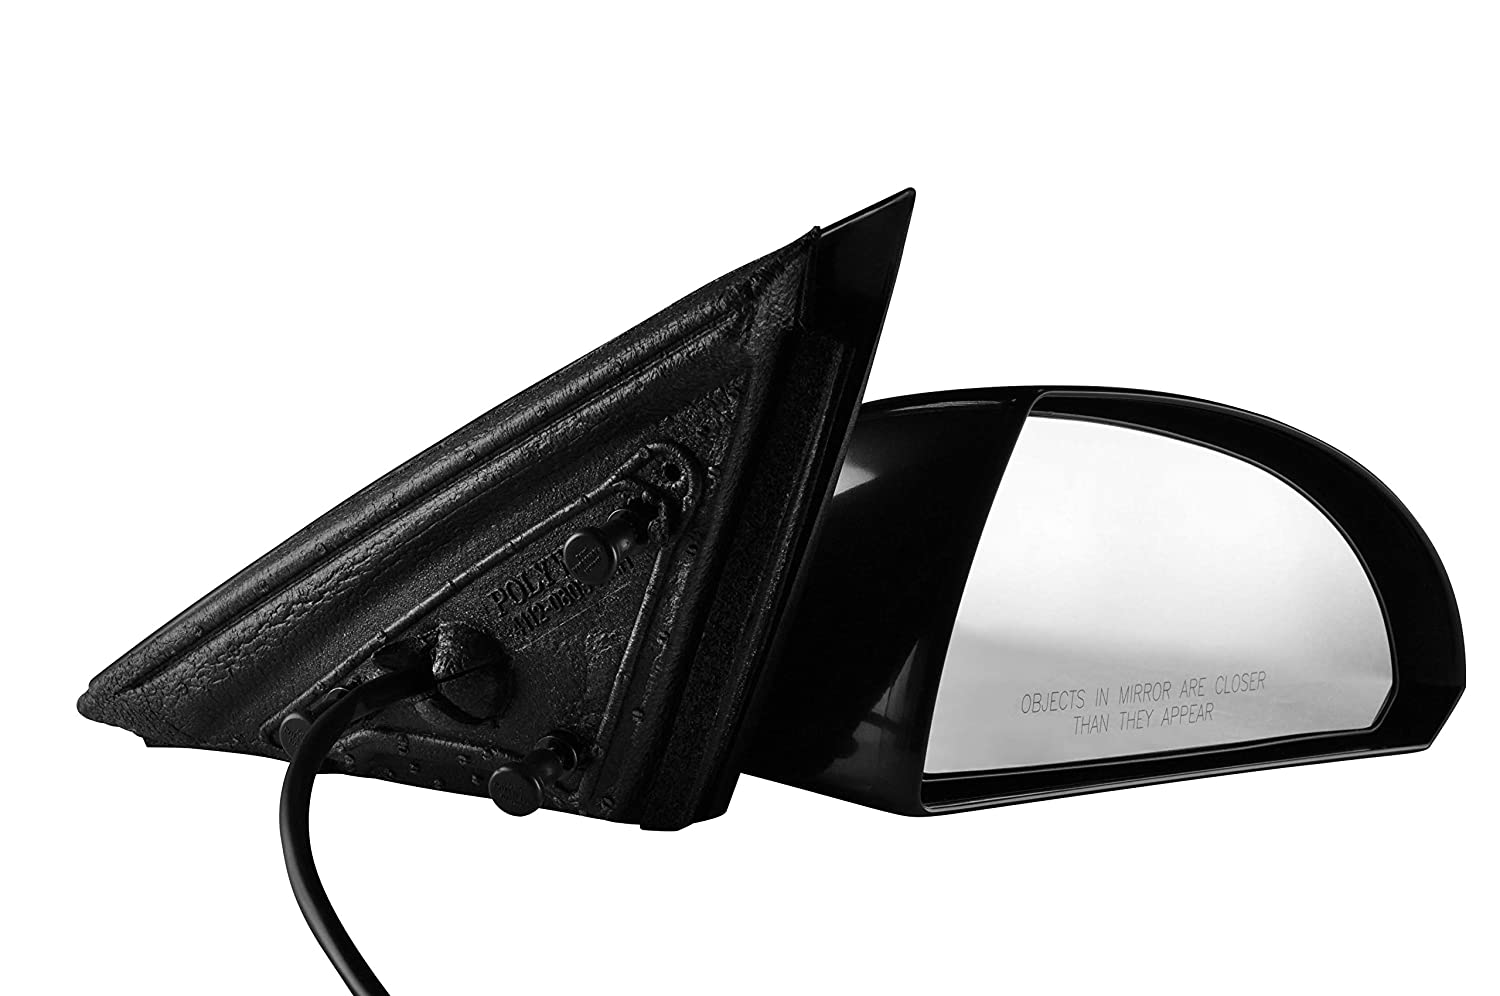 Passenger Side Textured Side View Mirror for 2006-2013 Chevrolet Impala 2014-2016 Chevrolet Impala Limited